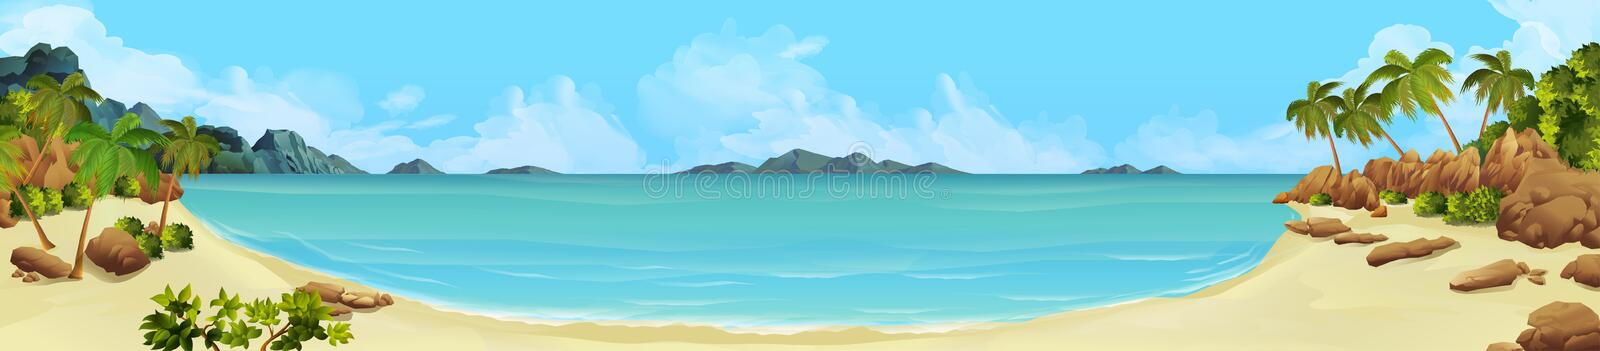 Baie, plage tropicale illustration stock